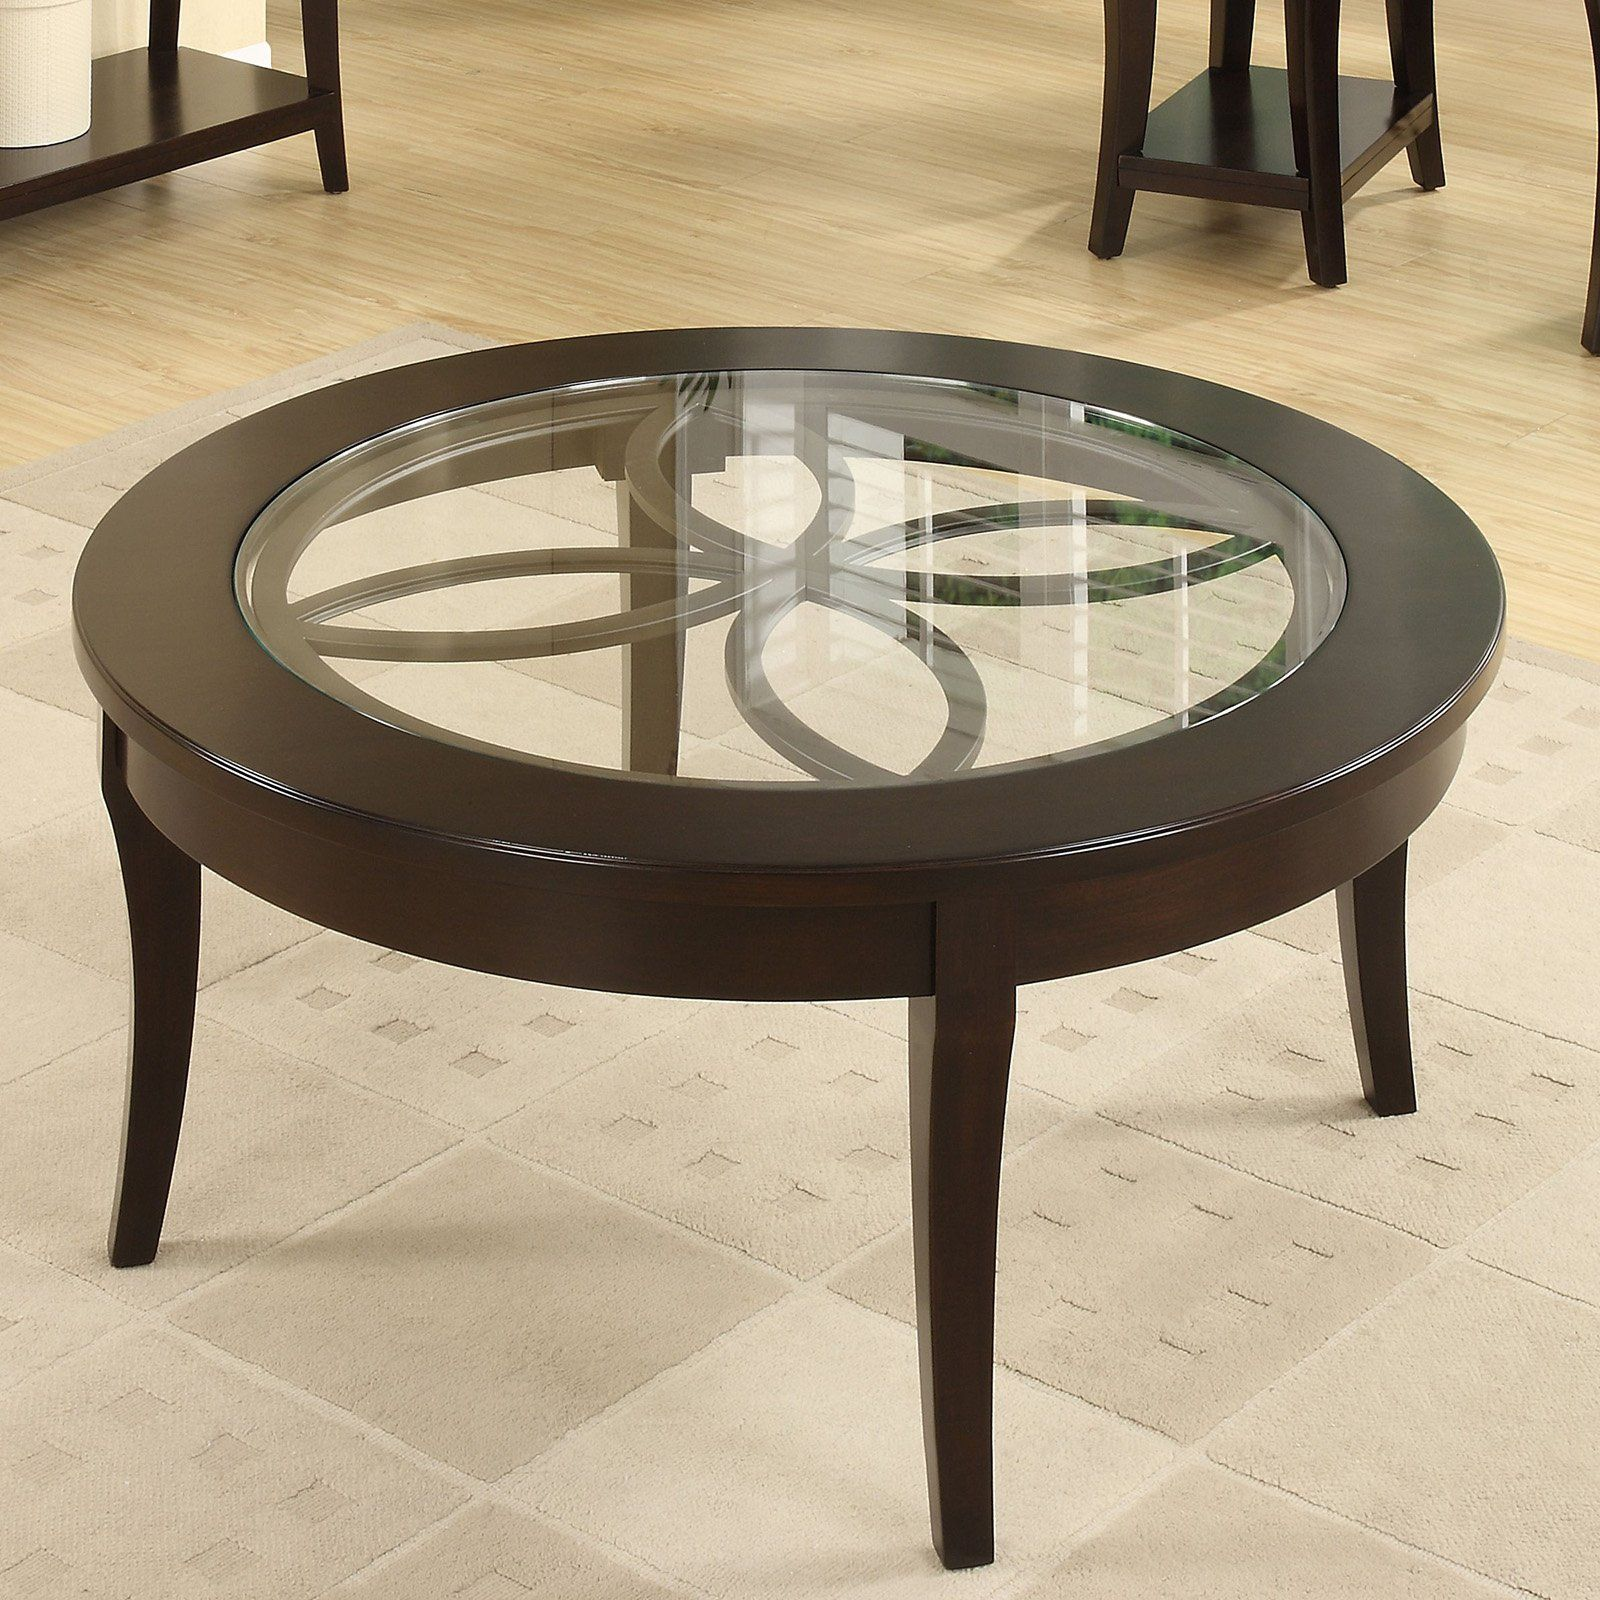 Riverside Annandale Round Cocktail Table Www Hayneedle Com Round Coffee Table Sets Coffee Table Square Wood Cocktail Table [ 1600 x 1600 Pixel ]